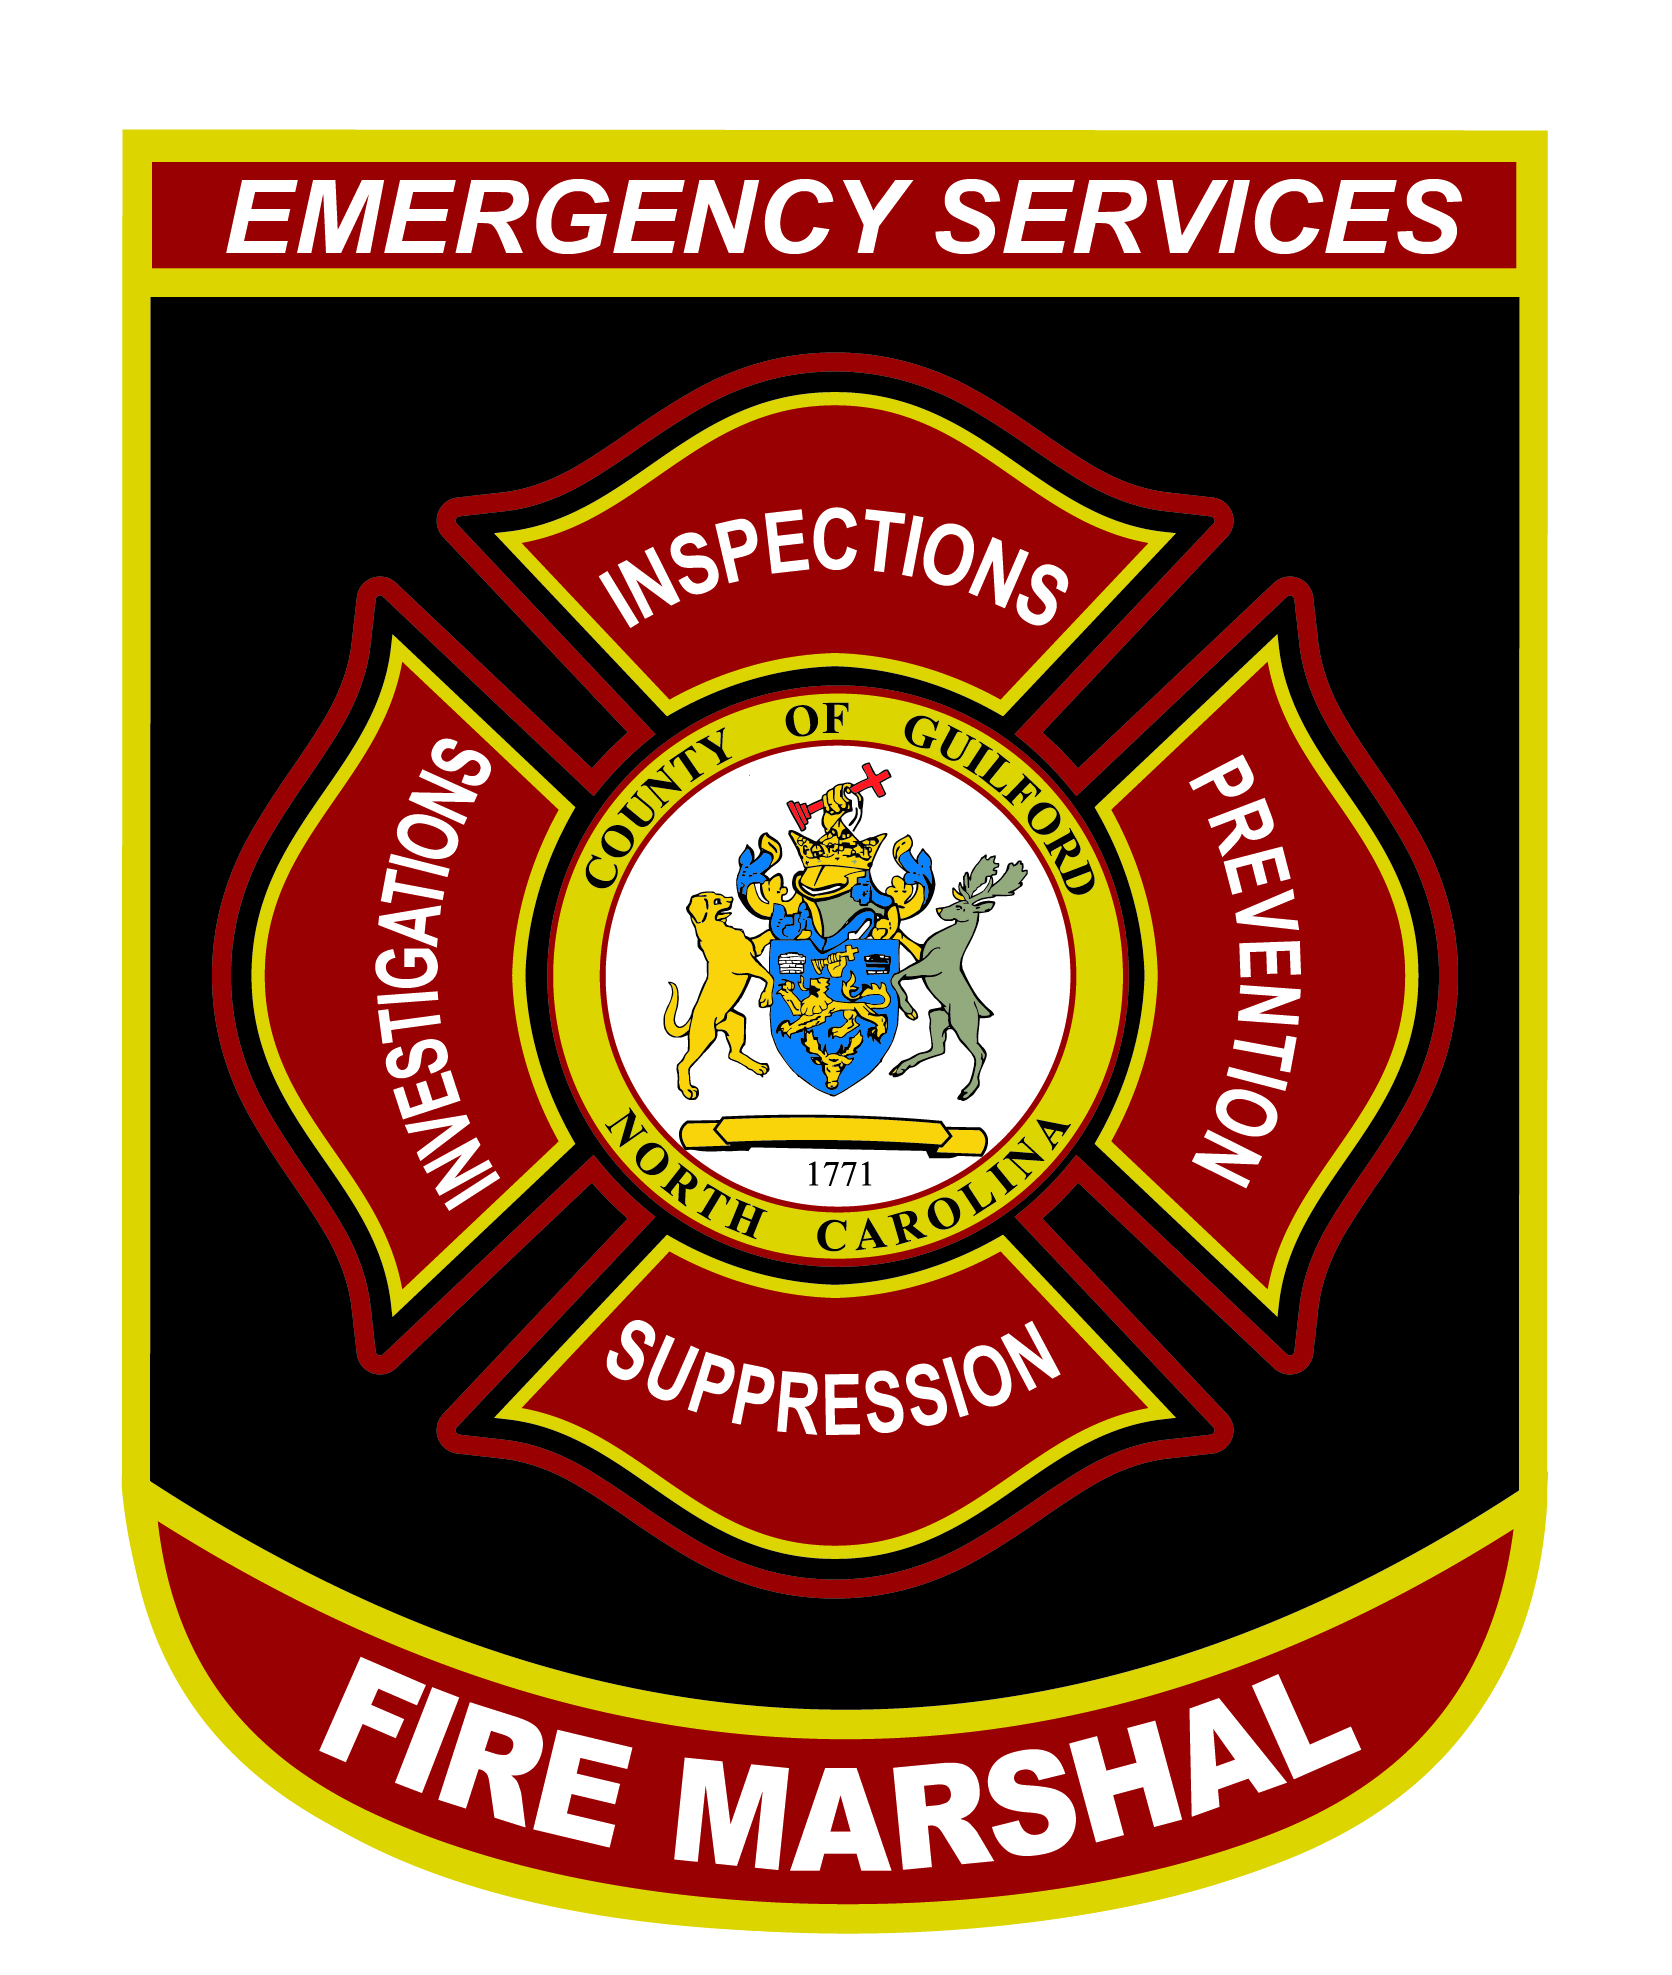 GCES fire marshal patch